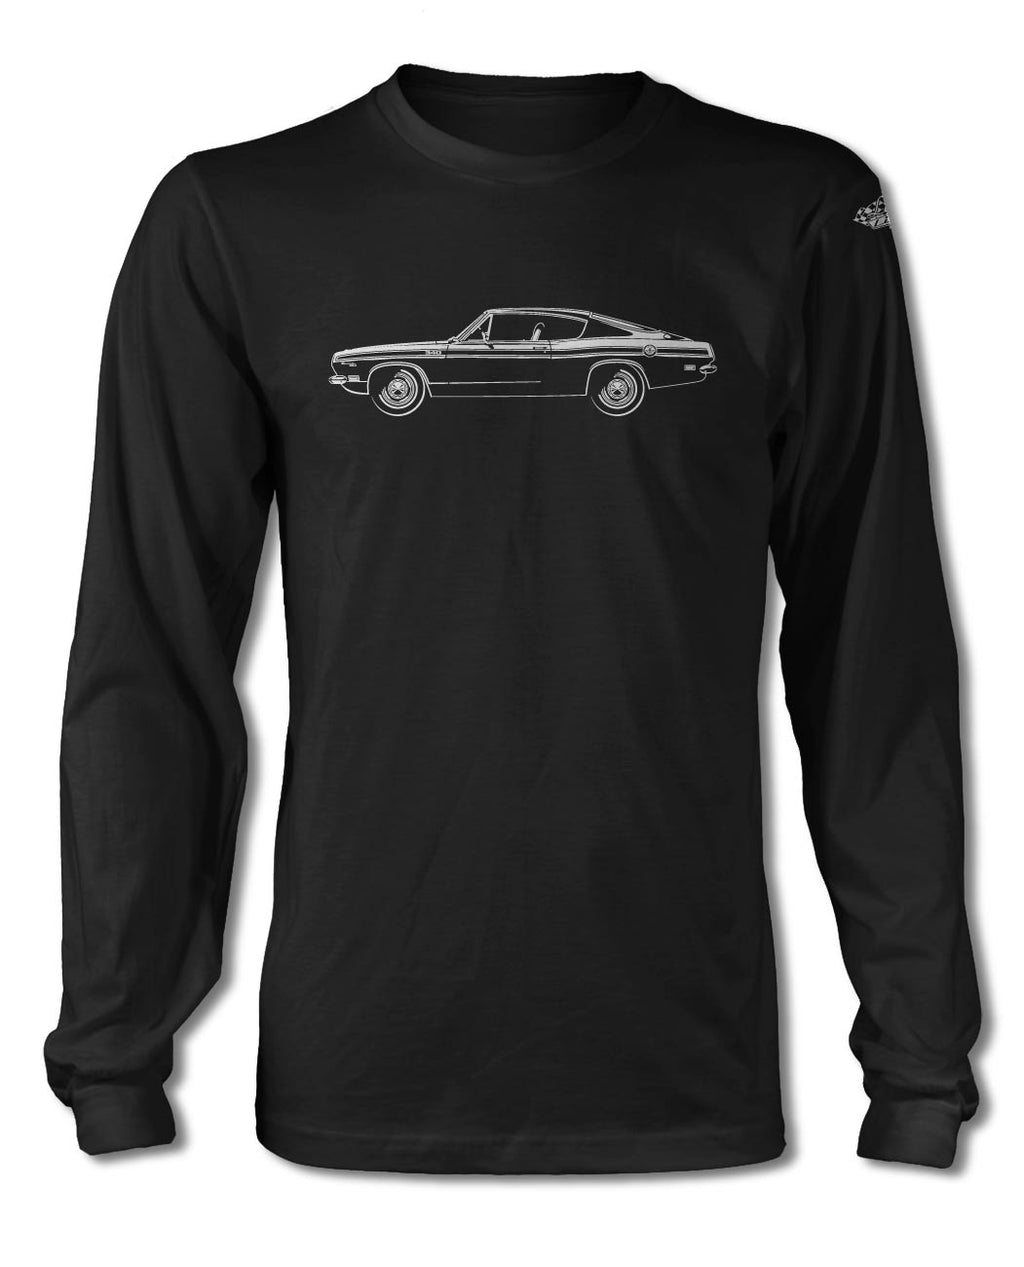 1969 Plymouth Barracuda 340 Fastback T-Shirt - Long Sleeves - Side View